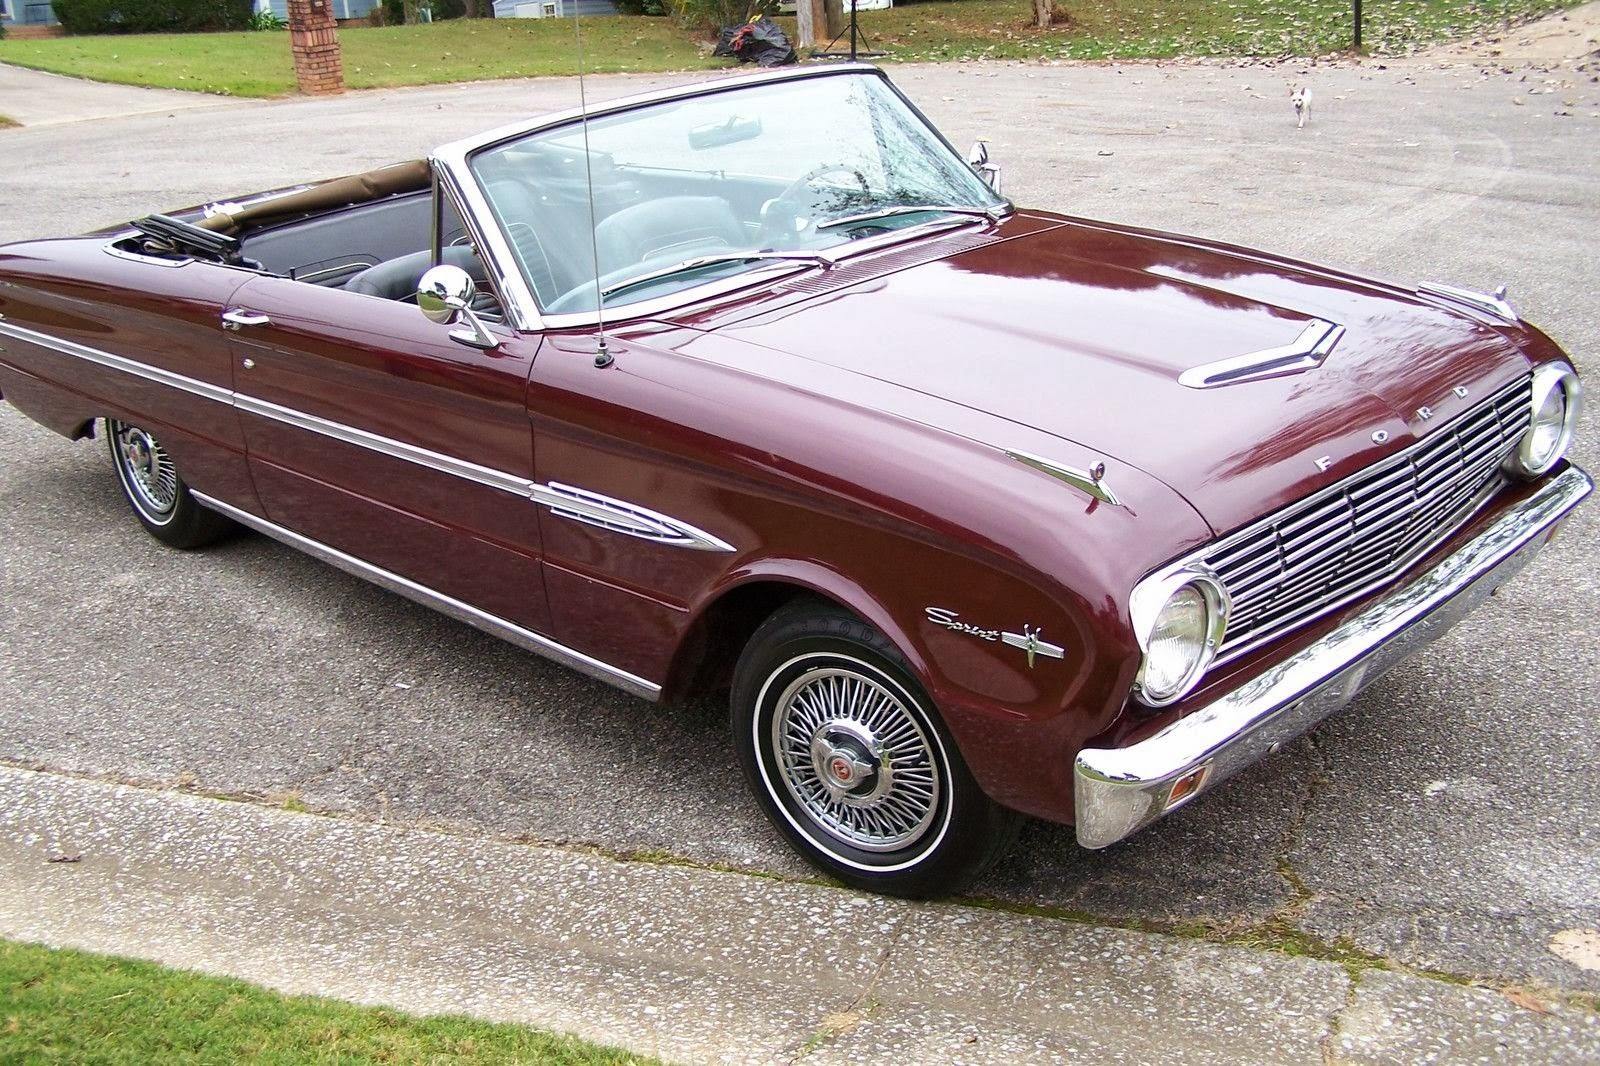 Daily turismo 15k the futura is now 1963 ford falcon futura sprint convertible